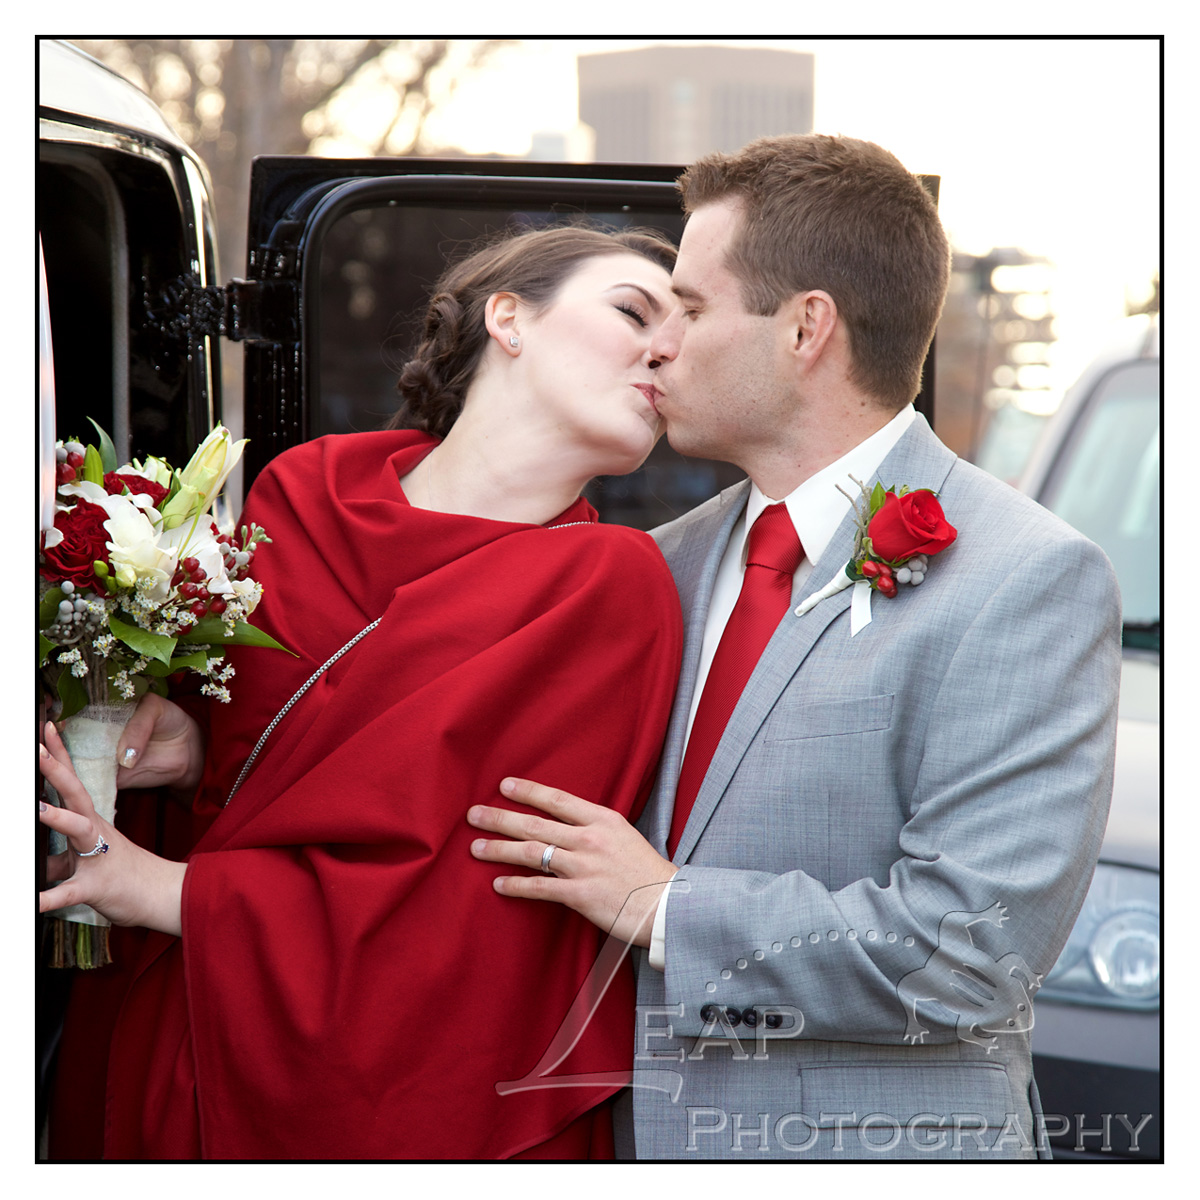 Newly wed couple kissing while getting in limo